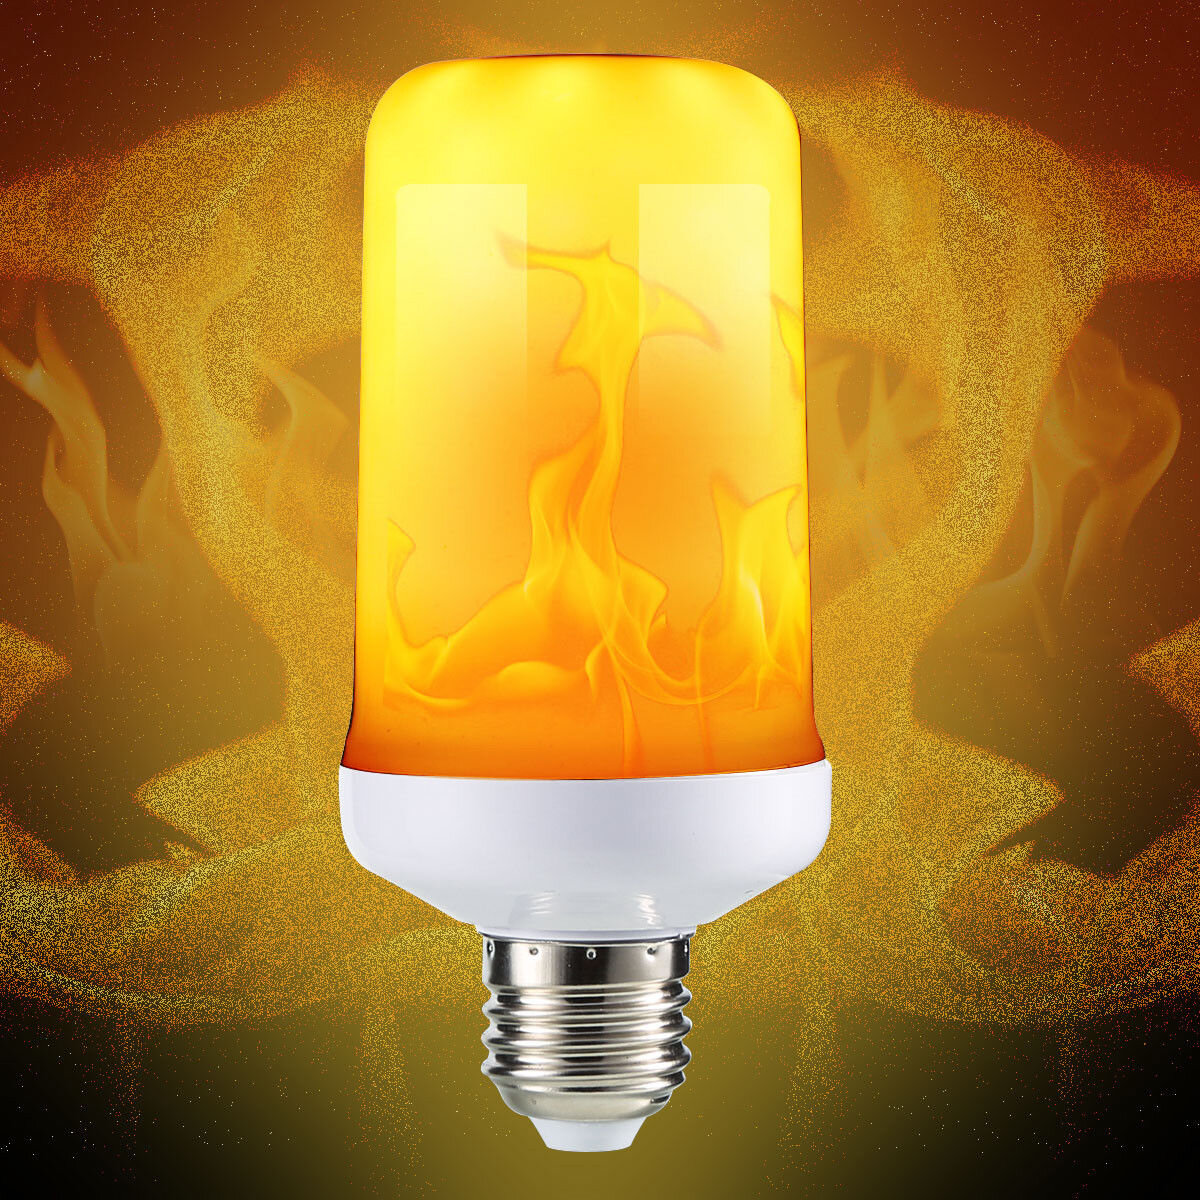 Flame Led Lamp E27 E27 4 Modes Smd2835 Led Flame Effect Flickering Emulation Fire Light Bulb Decoration Lamp Ac85 265v